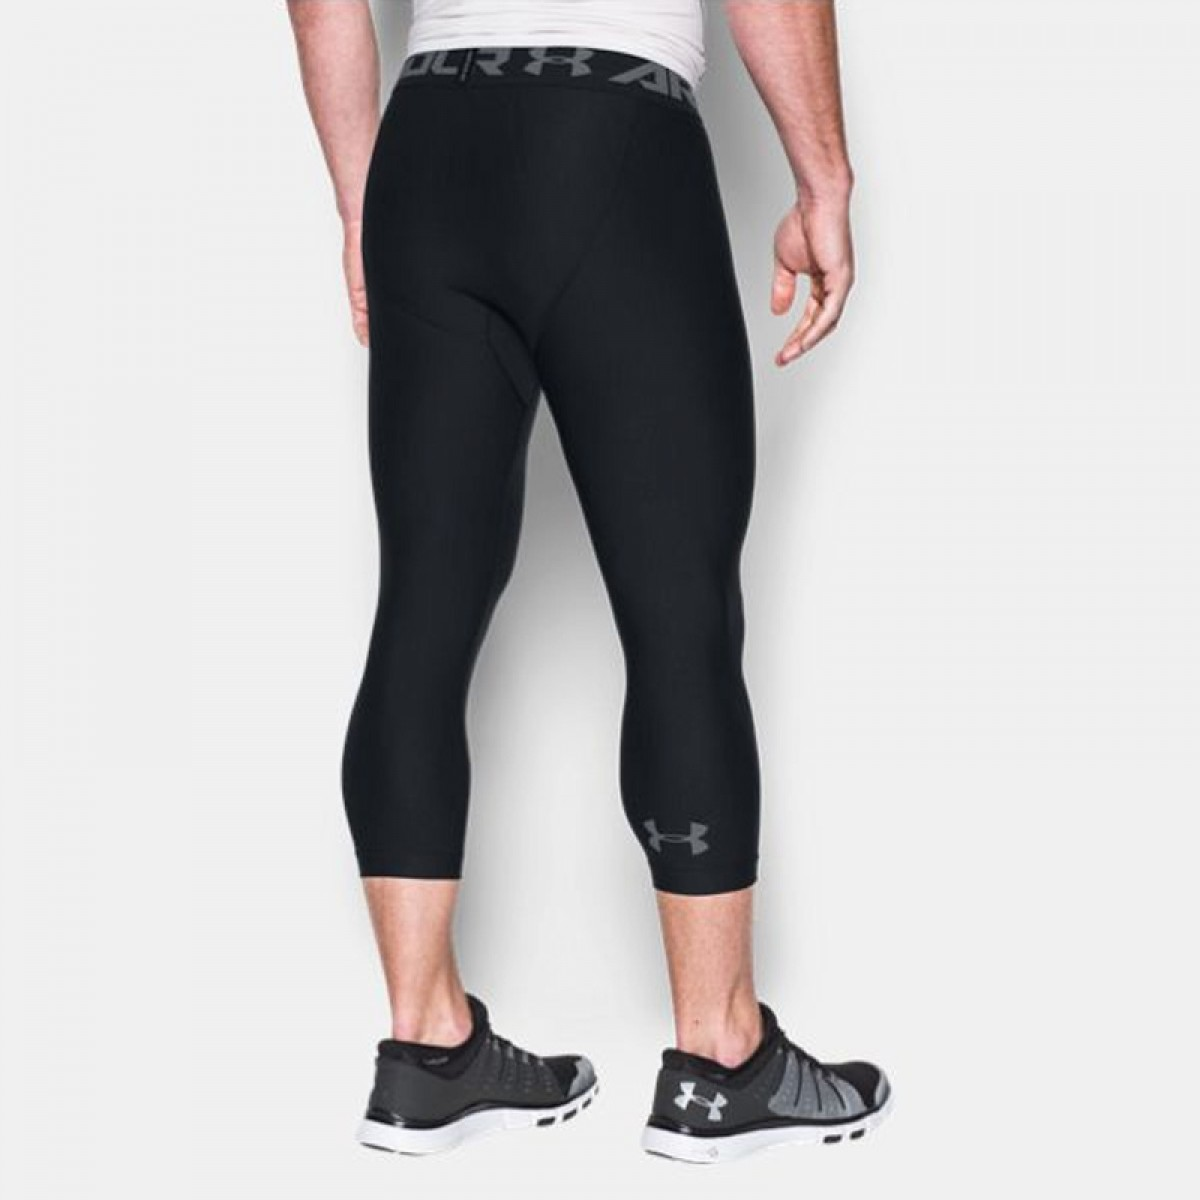 UA 2.0 Legging 3/4 'Black' 1289574-001